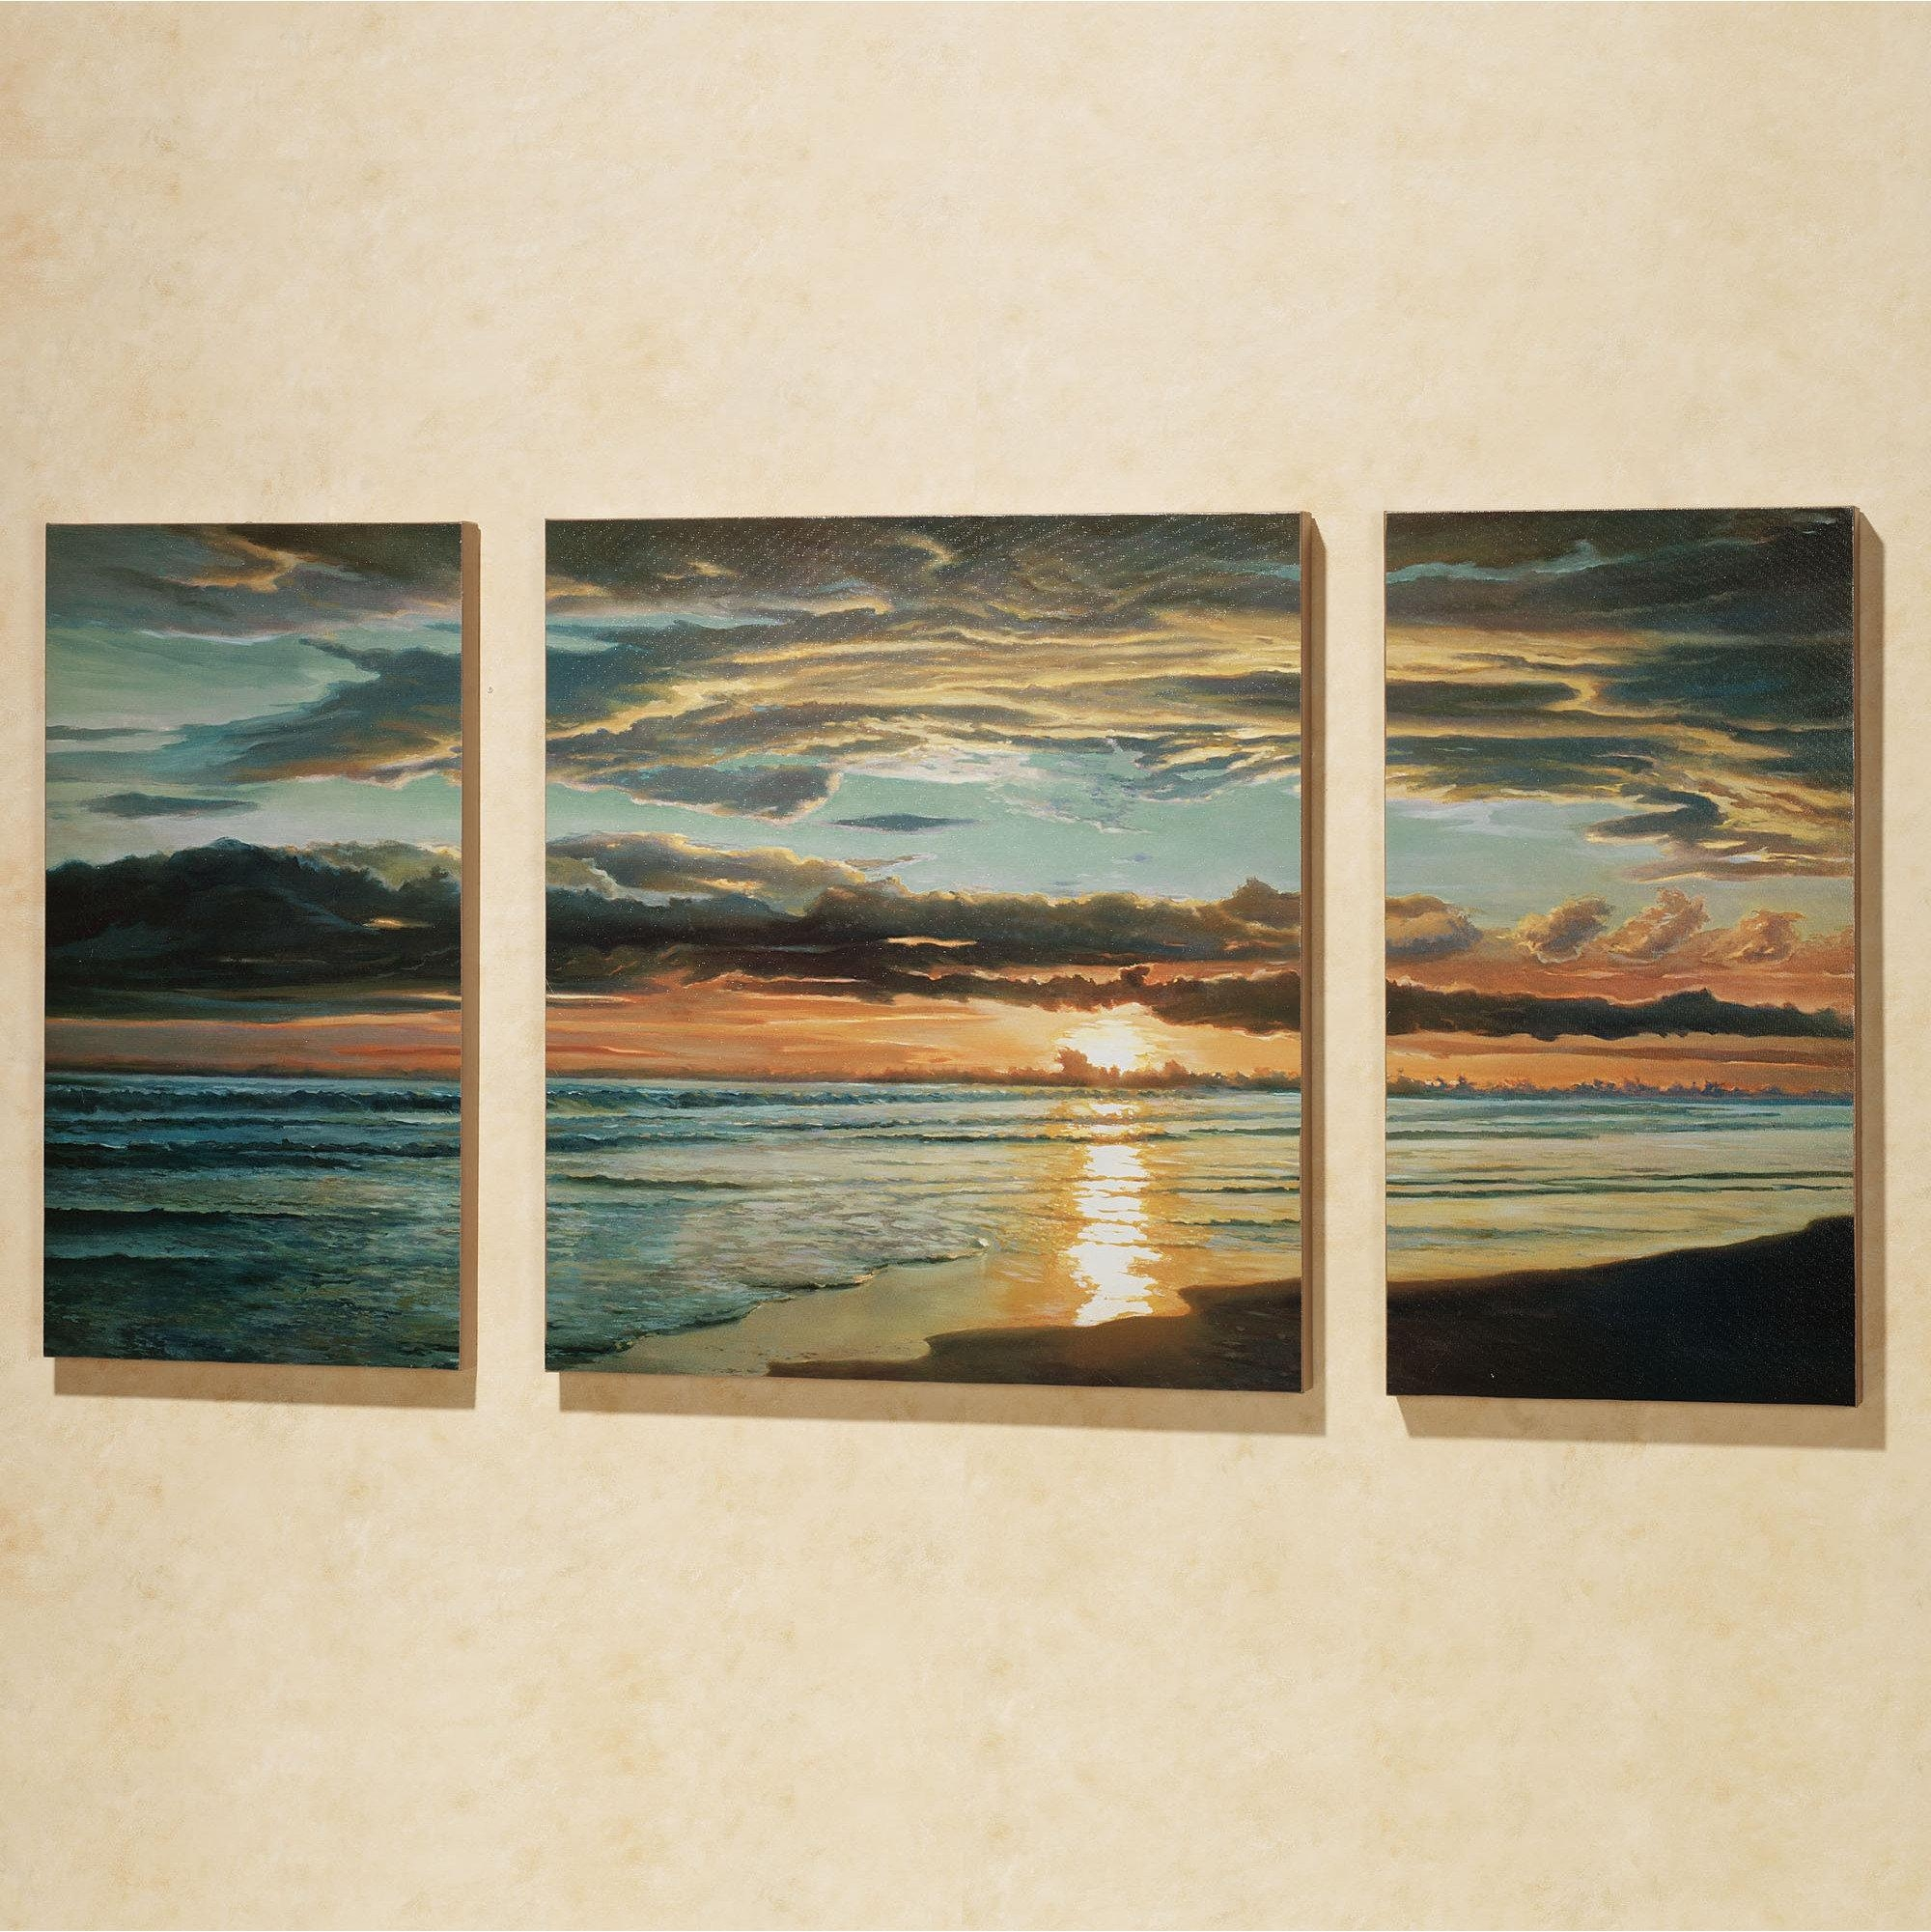 Wall Art Designs: Modern Designing Triptych Wall Art Canvas For Inside Triptych Art For Sale (Image 14 of 20)